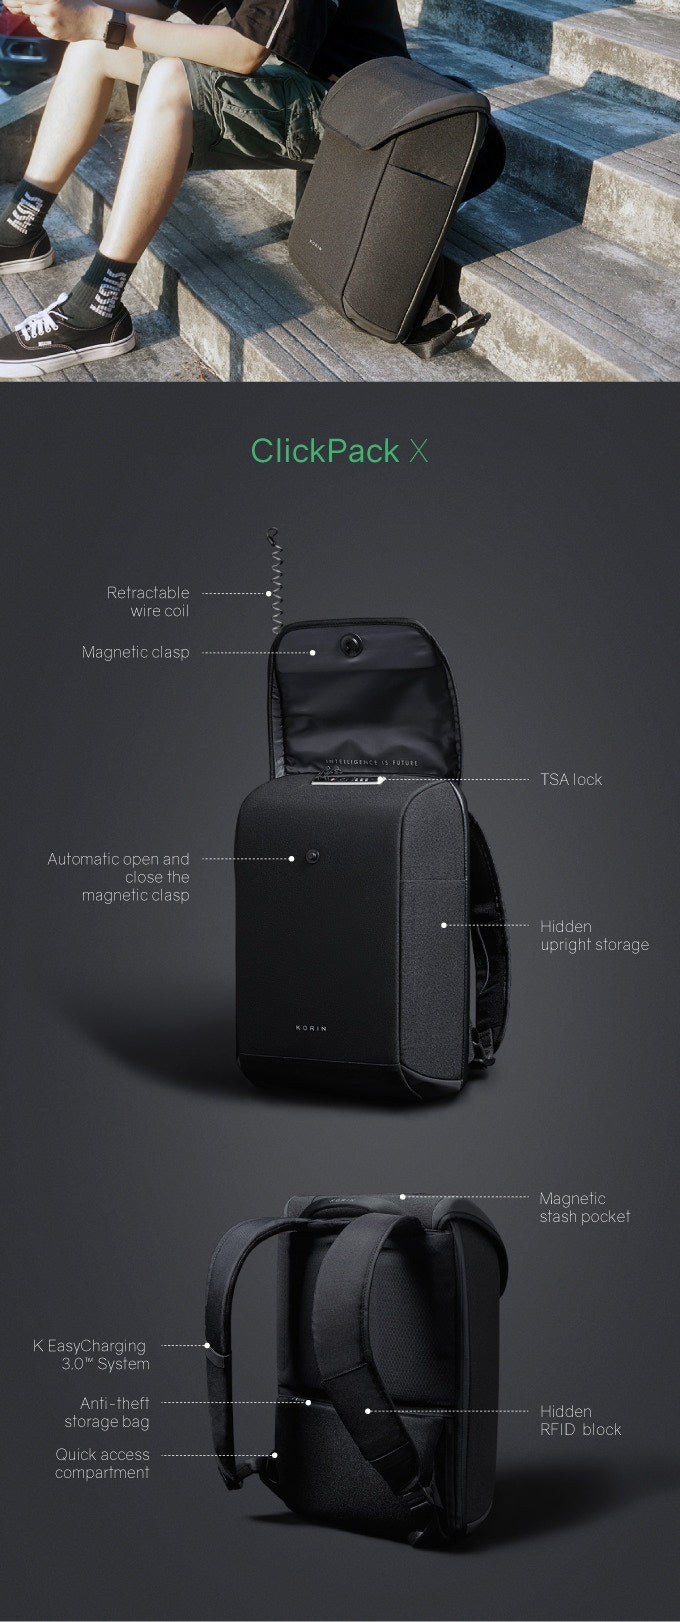 ClickPack X retractable coil magnetic buckle-automatically open and close the magnetic buckle hidden upright storage magnetic storage bag KEAsyCharging 3.O System anti-theft-hidden storage bag RFID block quick access-kingsons.com